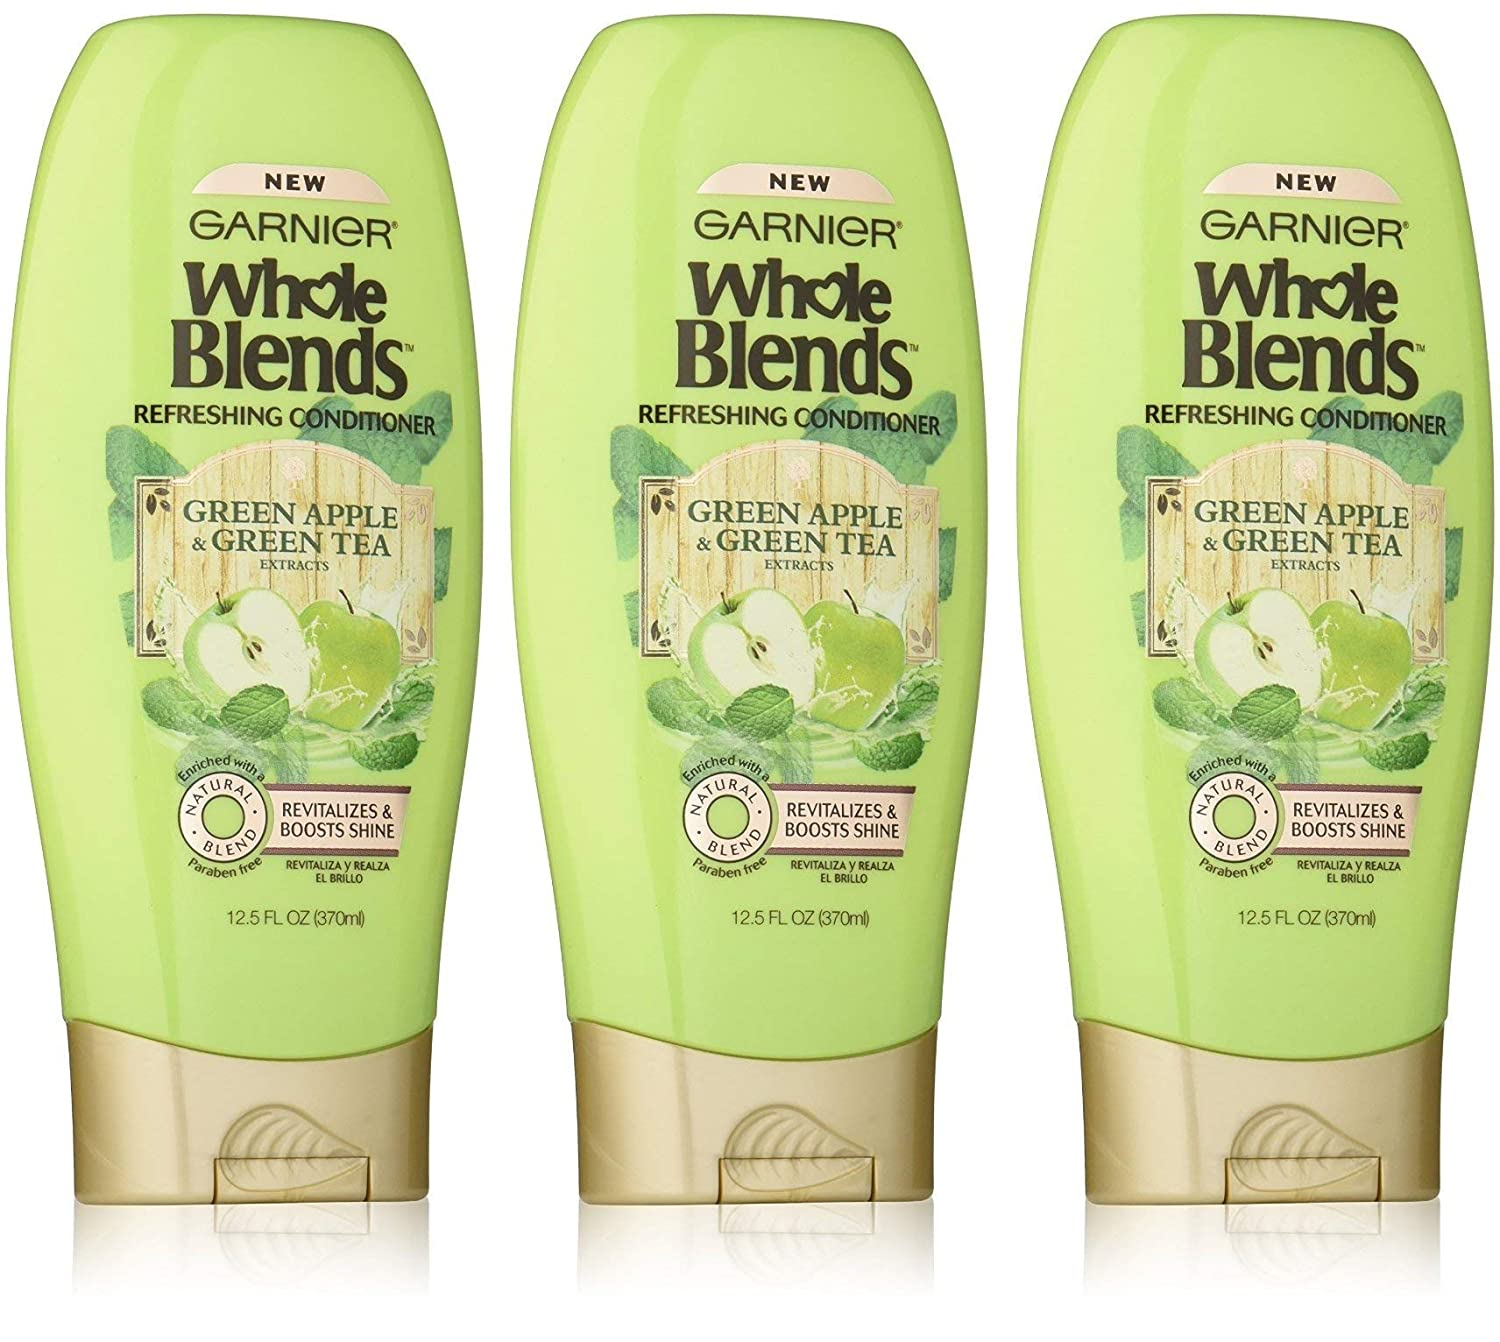 Garnier Whole Blends Refreshing Conditioner, Green Apple & Green Tea Extracts 12.50 oz ( Pack of 3)